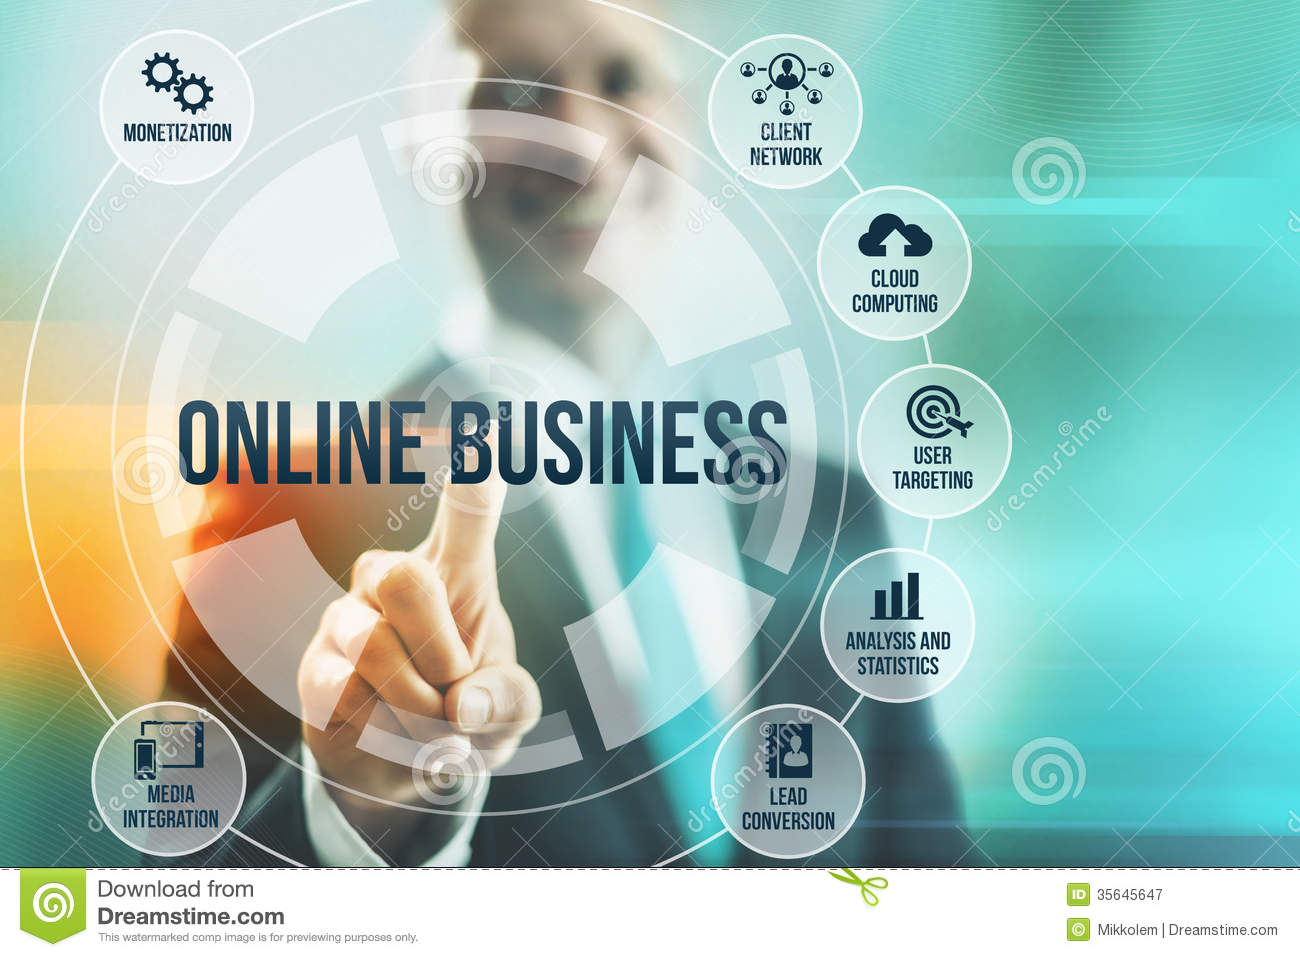 Rank You Up a Digital Advertising Company, Helps You to Promote Your Enterprise On-line